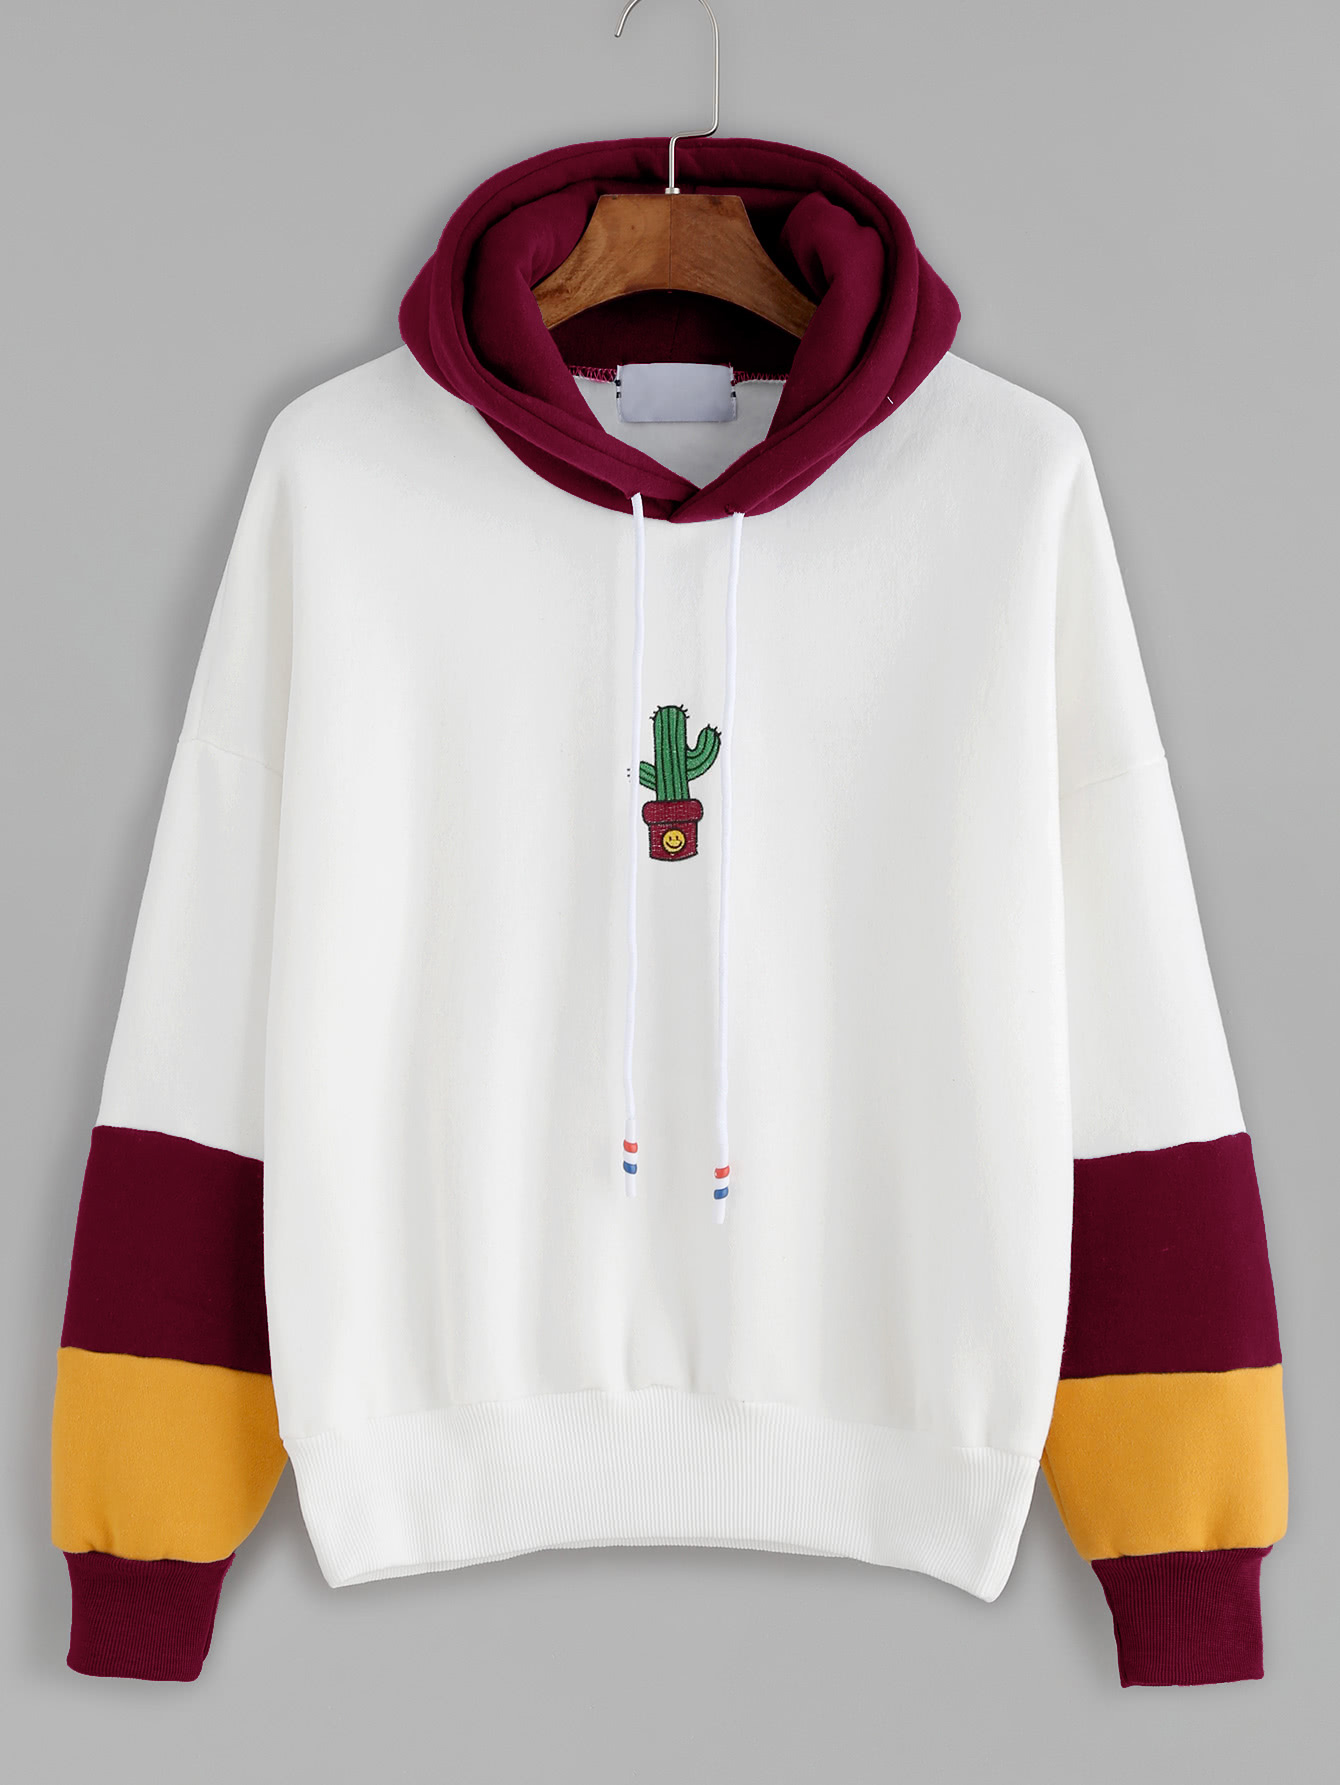 Hooded Drawstring Cactus Embroidered Contrast Sleeve Sweatshirt contrast check plaid embroidered appliques sweatshirt page 9